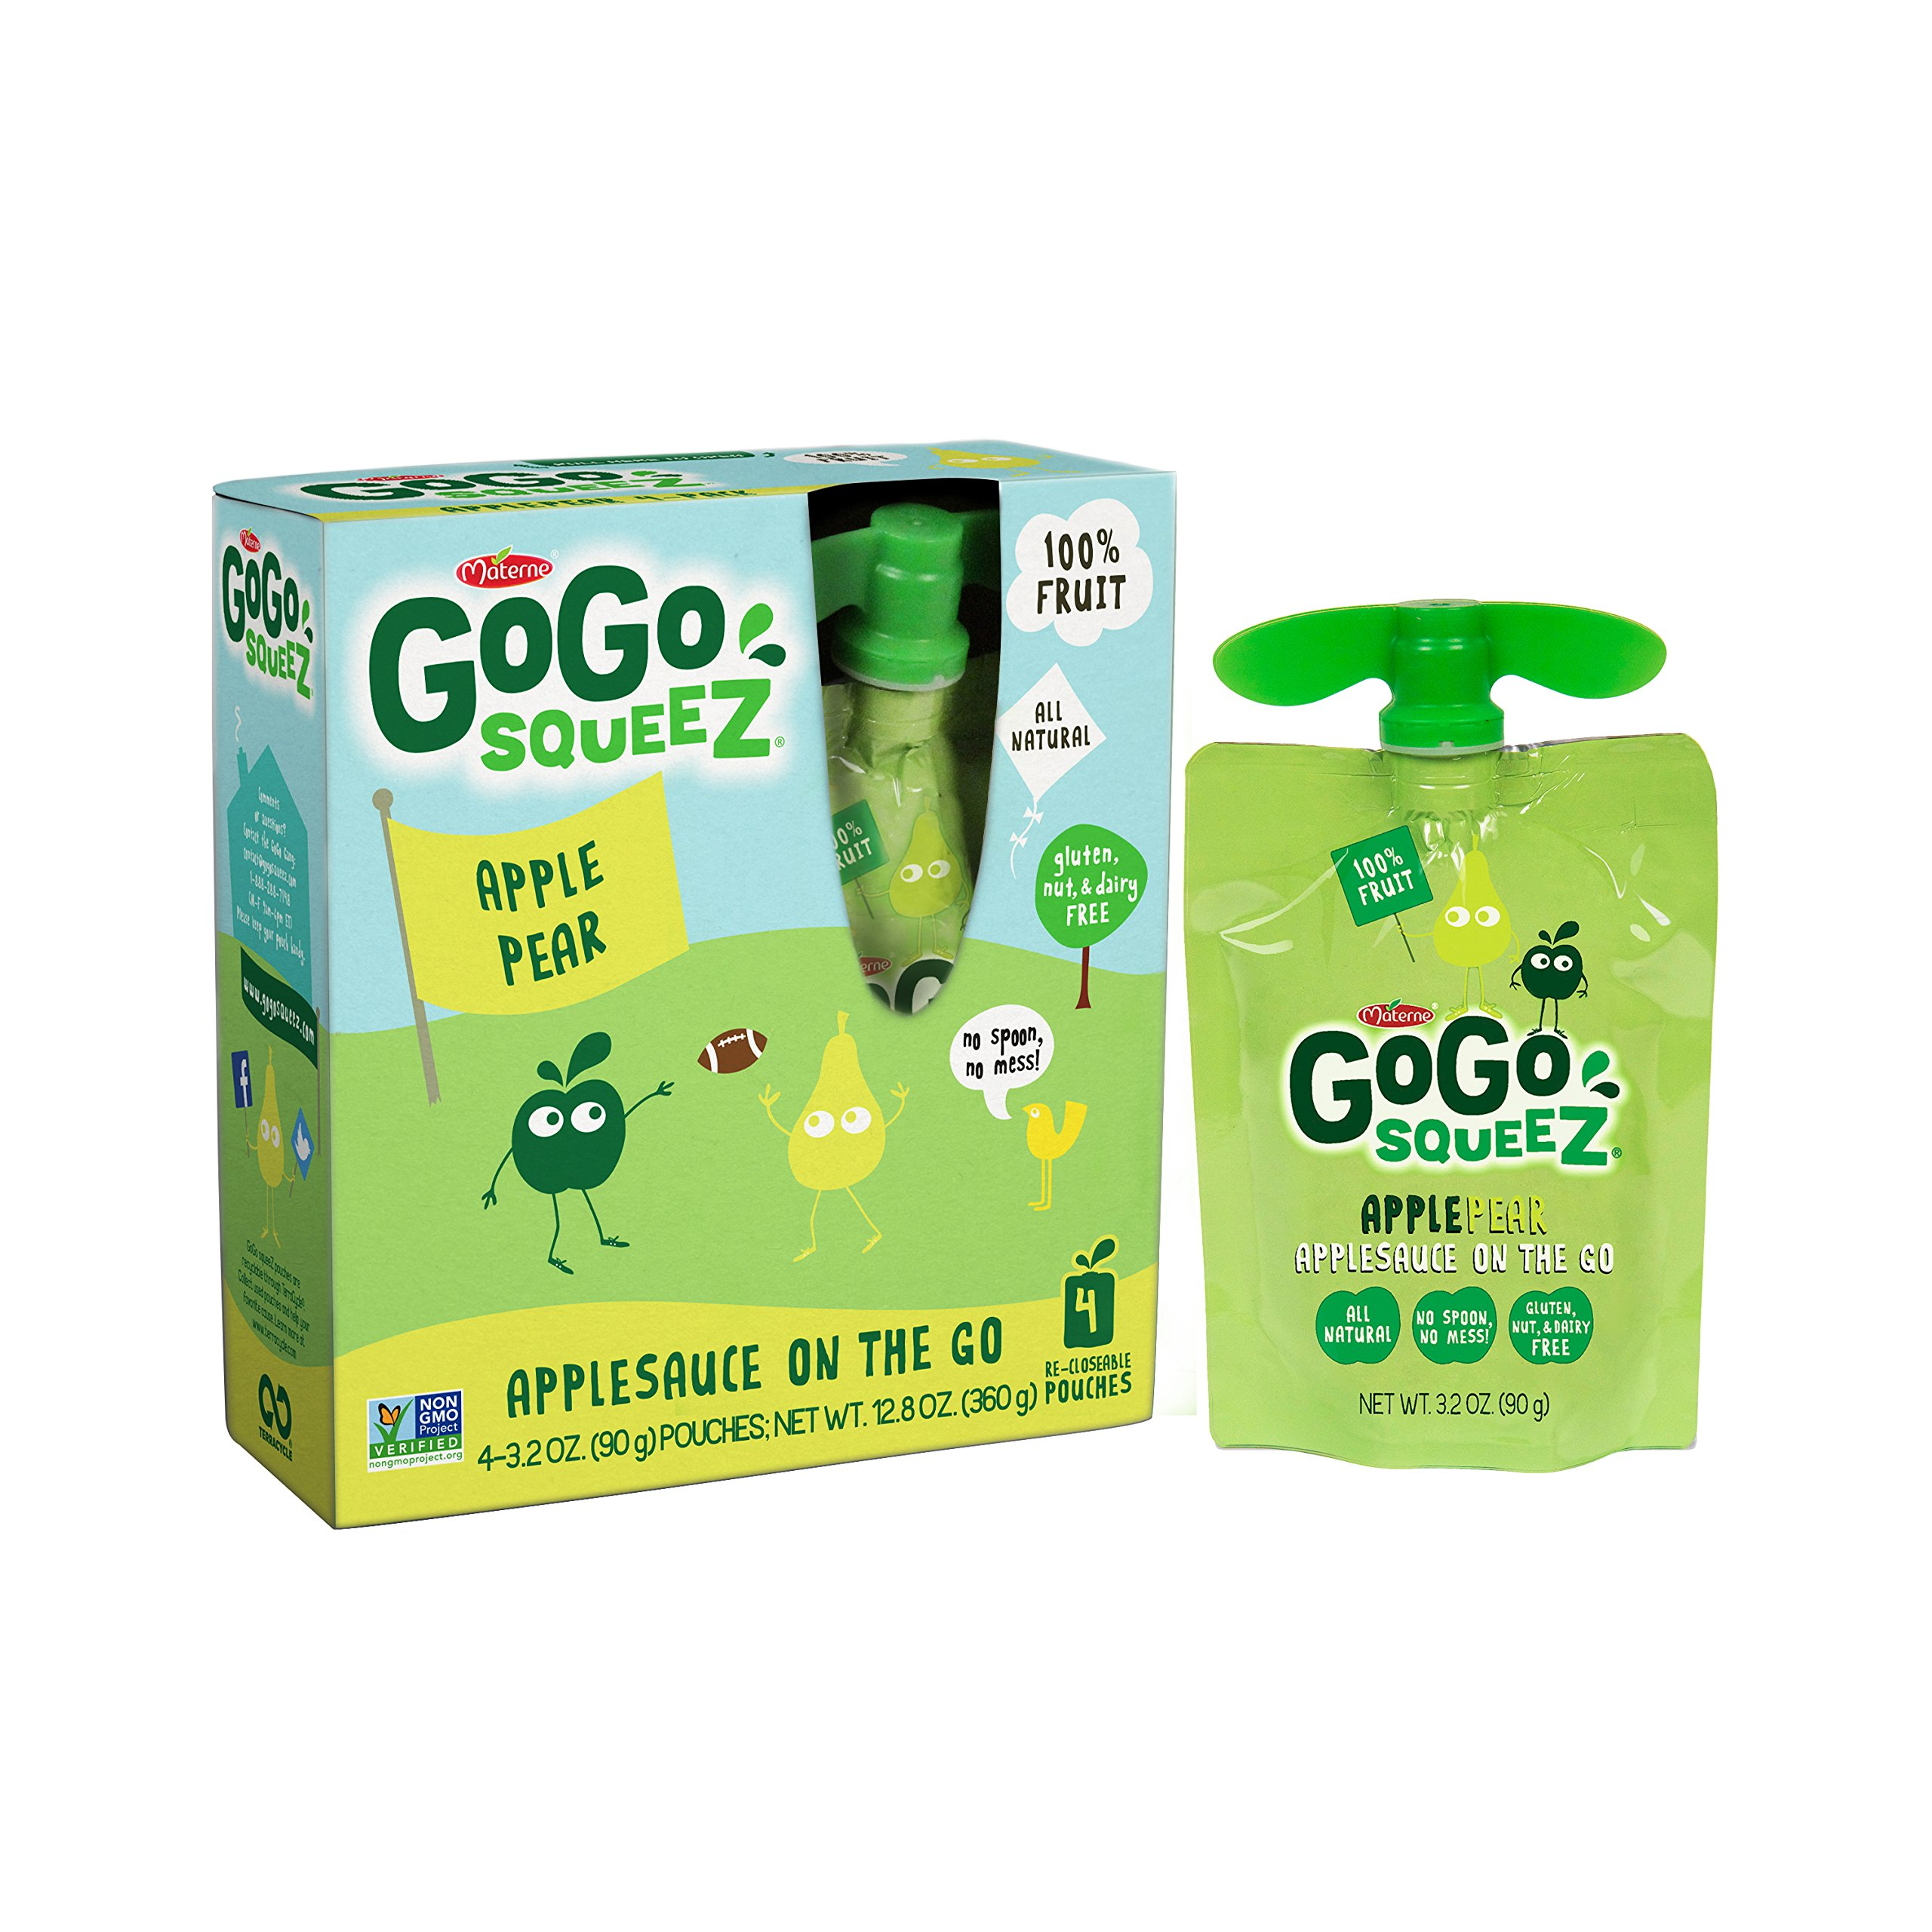 GoGo squeeZ Applesauce on the Go, Apple Pear, 3.2 Ounce Portable BPA-Free Pouches, Gluten-Free, 4 Total Pouches by GoGo SqueeZ